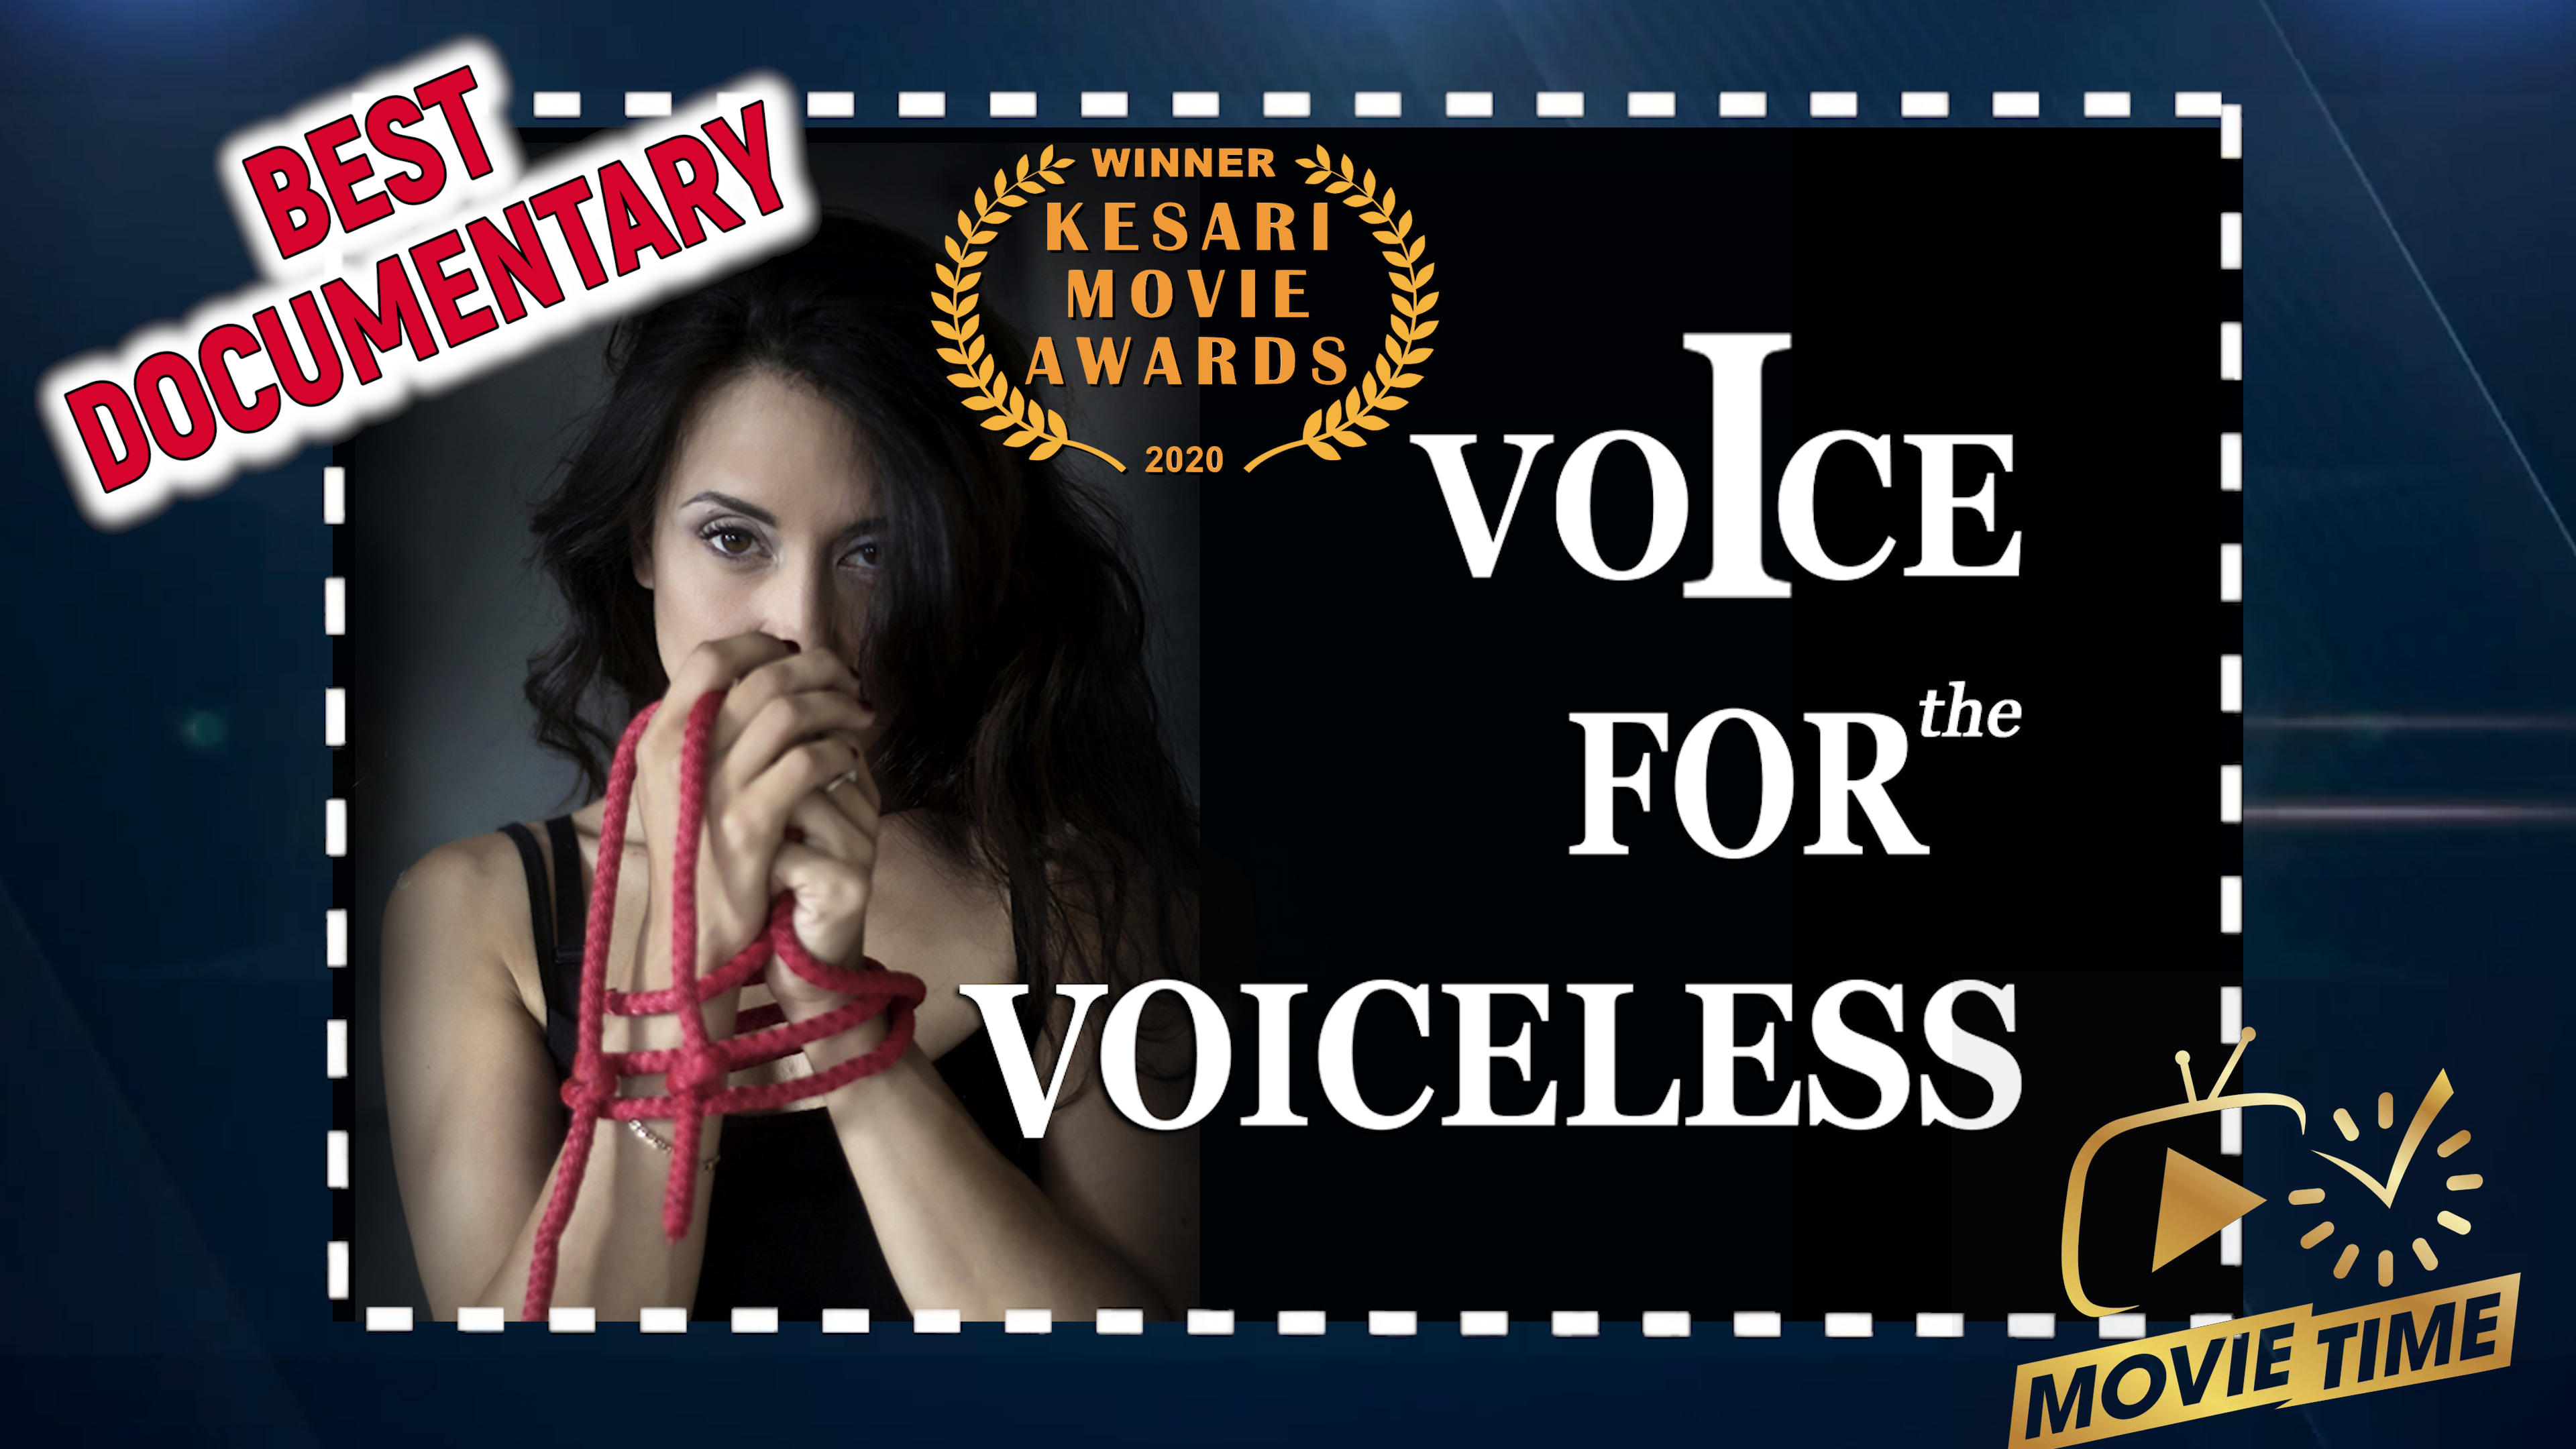 Voice for the Voiceless — WON🏆| Kesari Movie Awards